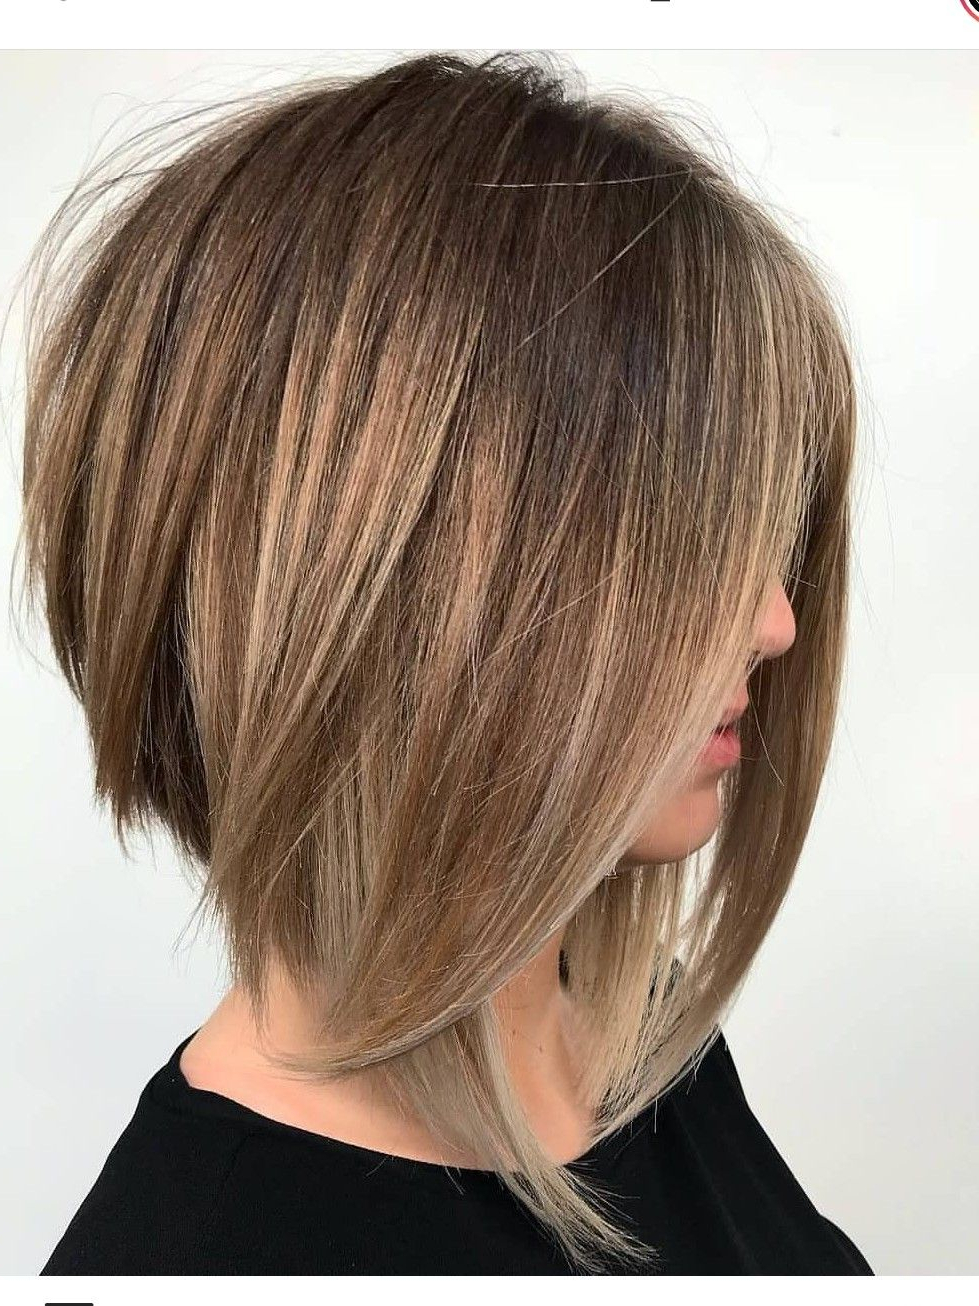 Famous Cute A Line Bob Hairstyles With Volume Towards The Ends Inside A Line Bob (View 12 of 20)